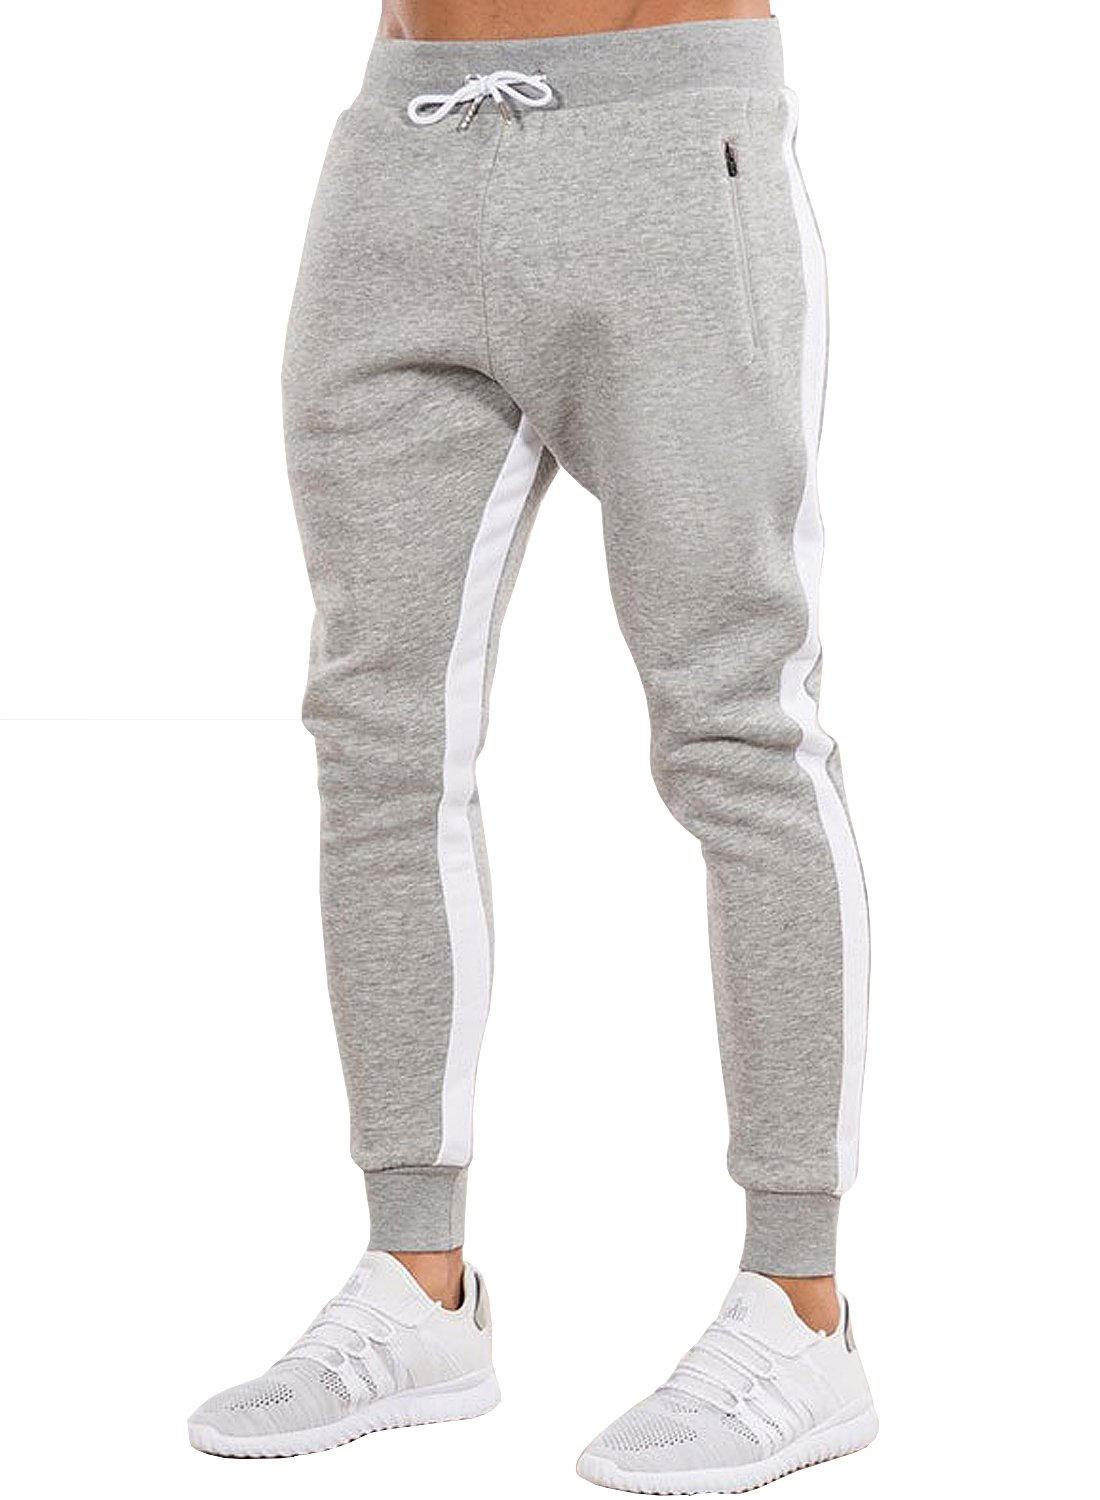 Ouber Men's Gym Jogger Pants Slim Fit Workout Running Sweatpants with Zipper Pockets (S,Grey)